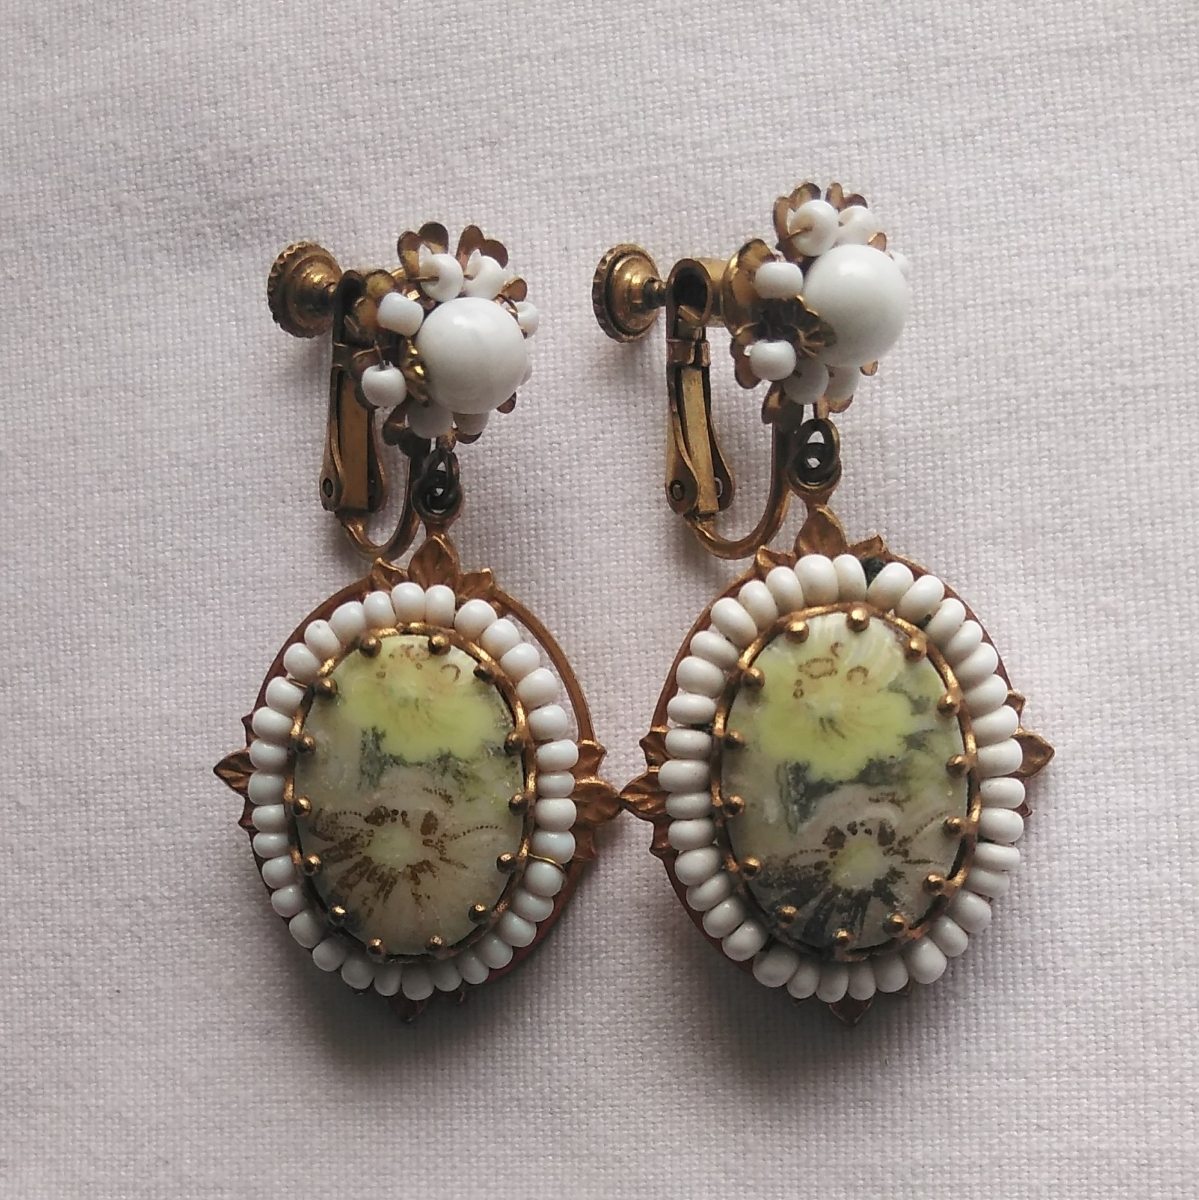 SALE ミリアム?ハスケル ヴィンテージ イヤリング ゴールド 白 花 Vintage Miriam Haskell flower earrings, gold tone with white beads